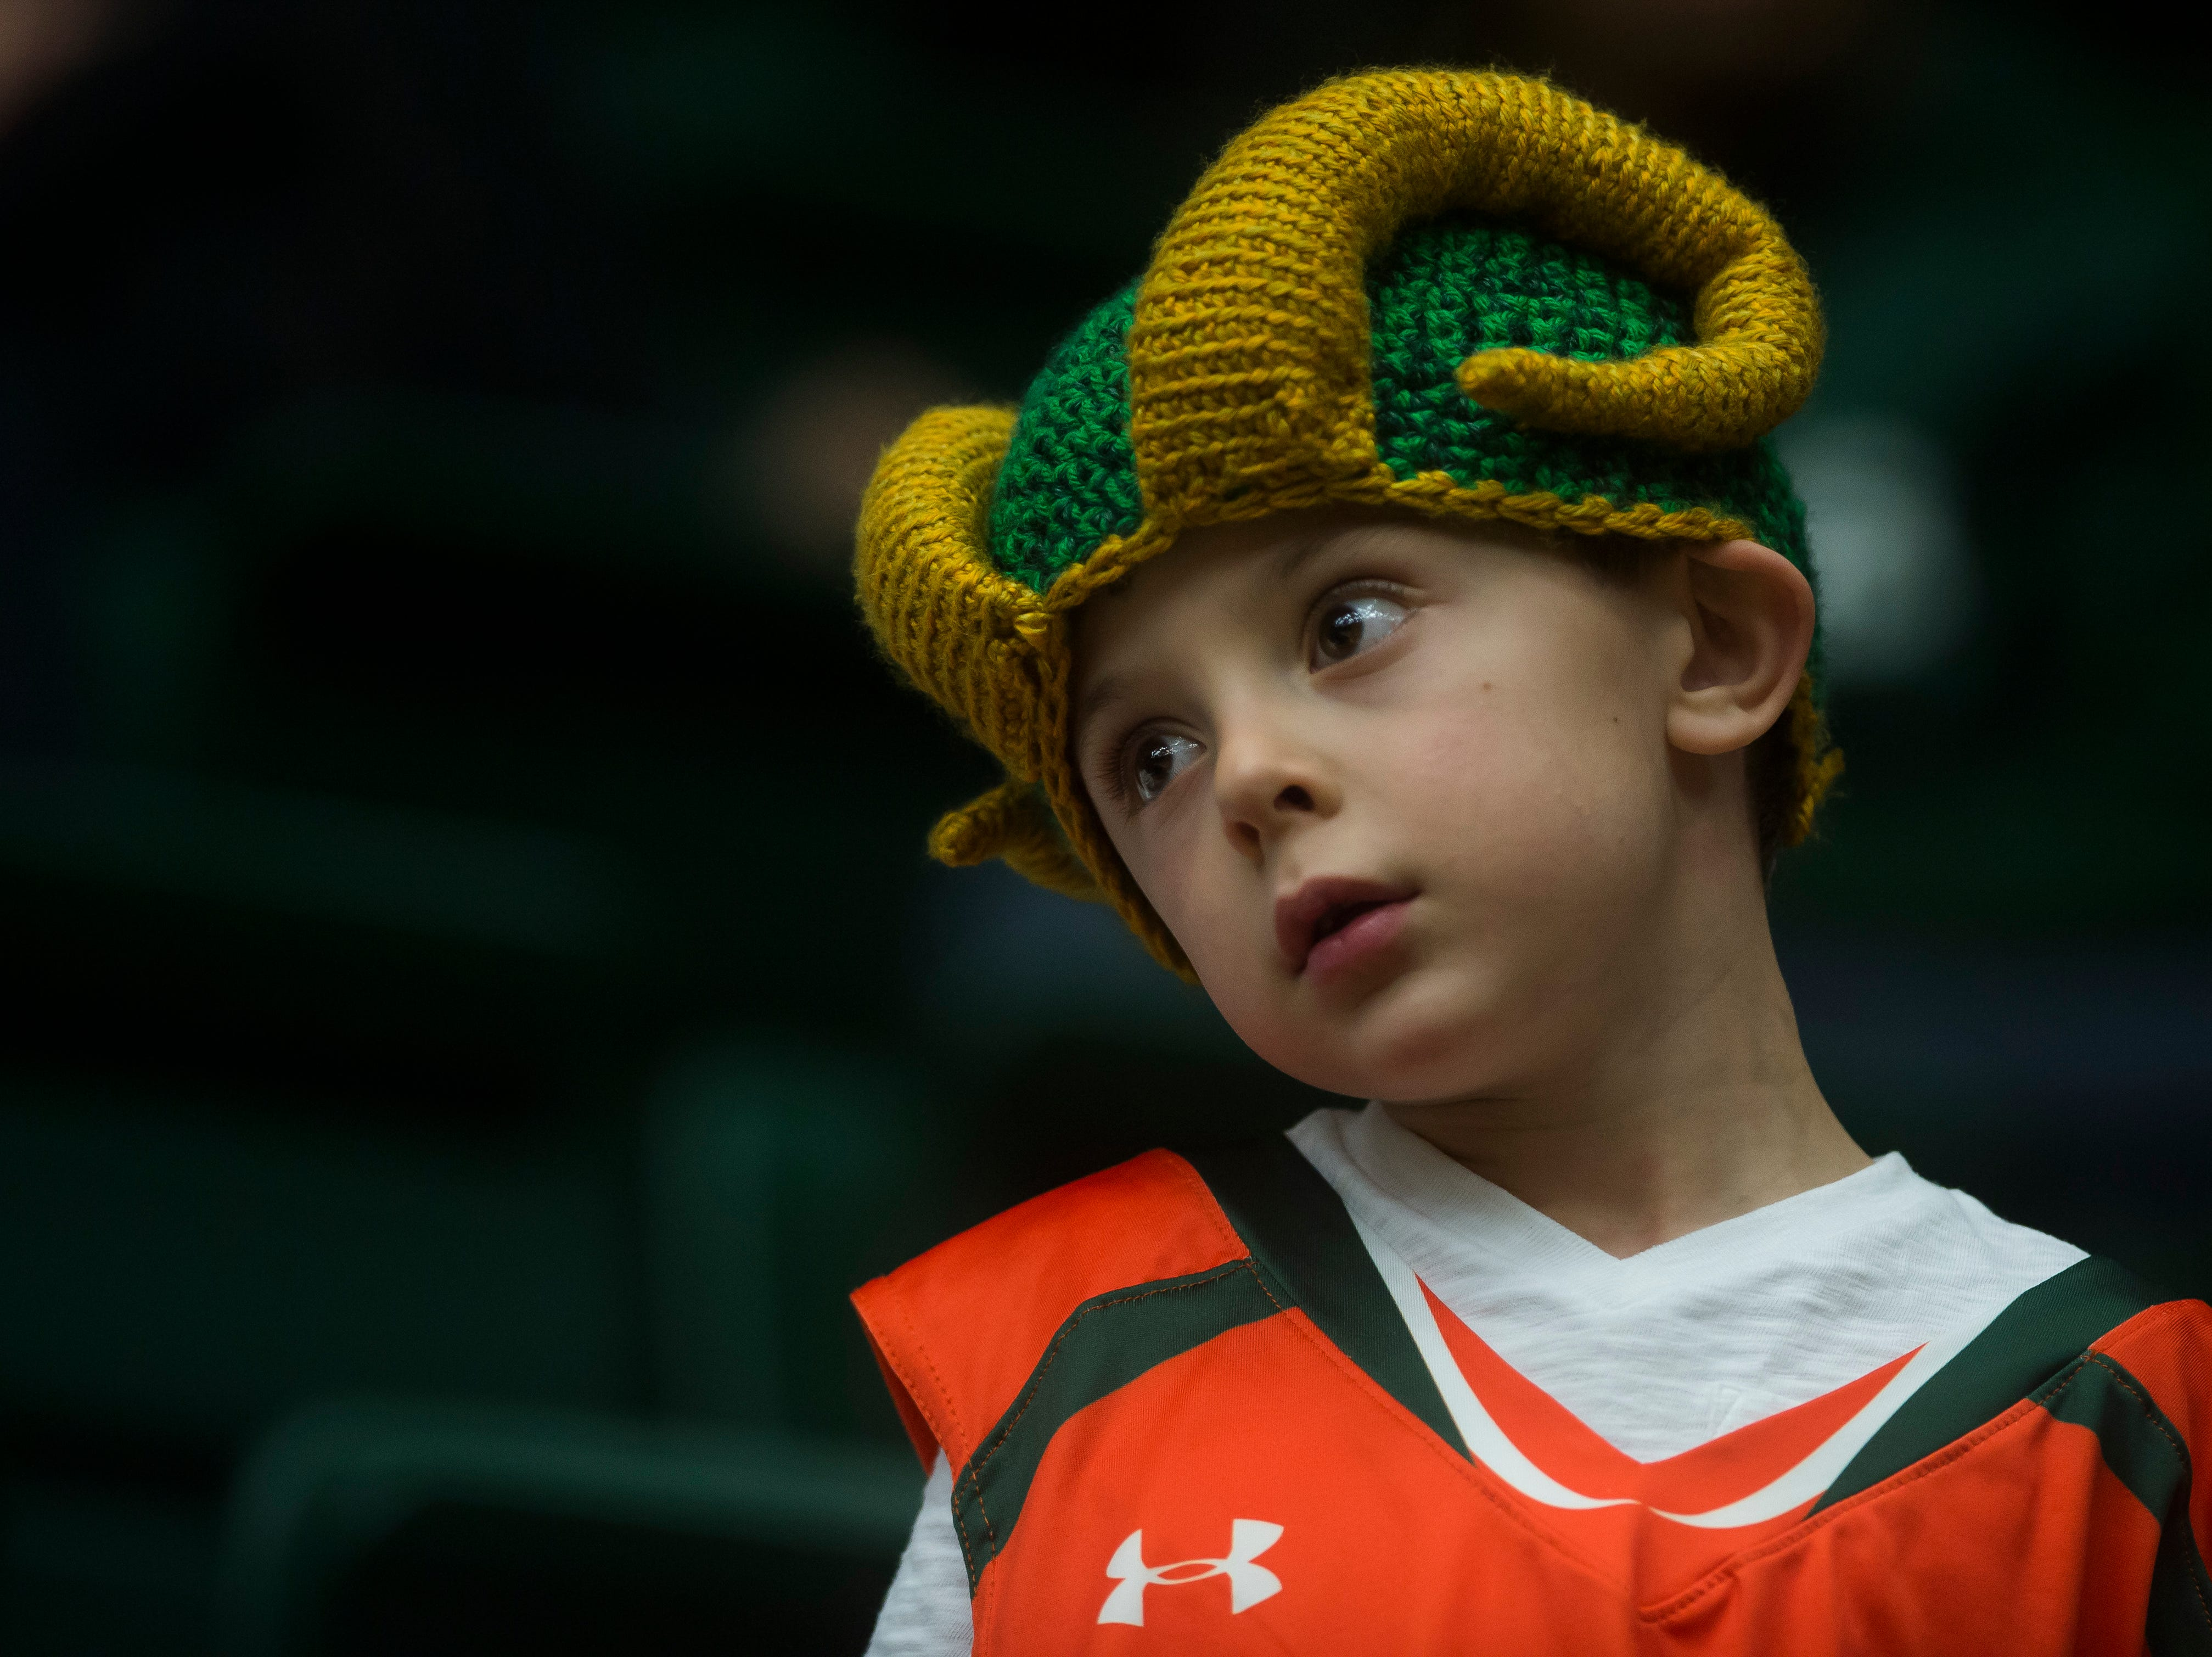 A young Colorado State University fan looks on during a game against Colorado Christian University on Wednesday, Nov. 7, 2018, at Moby Arena in Fort Collins, Colo.